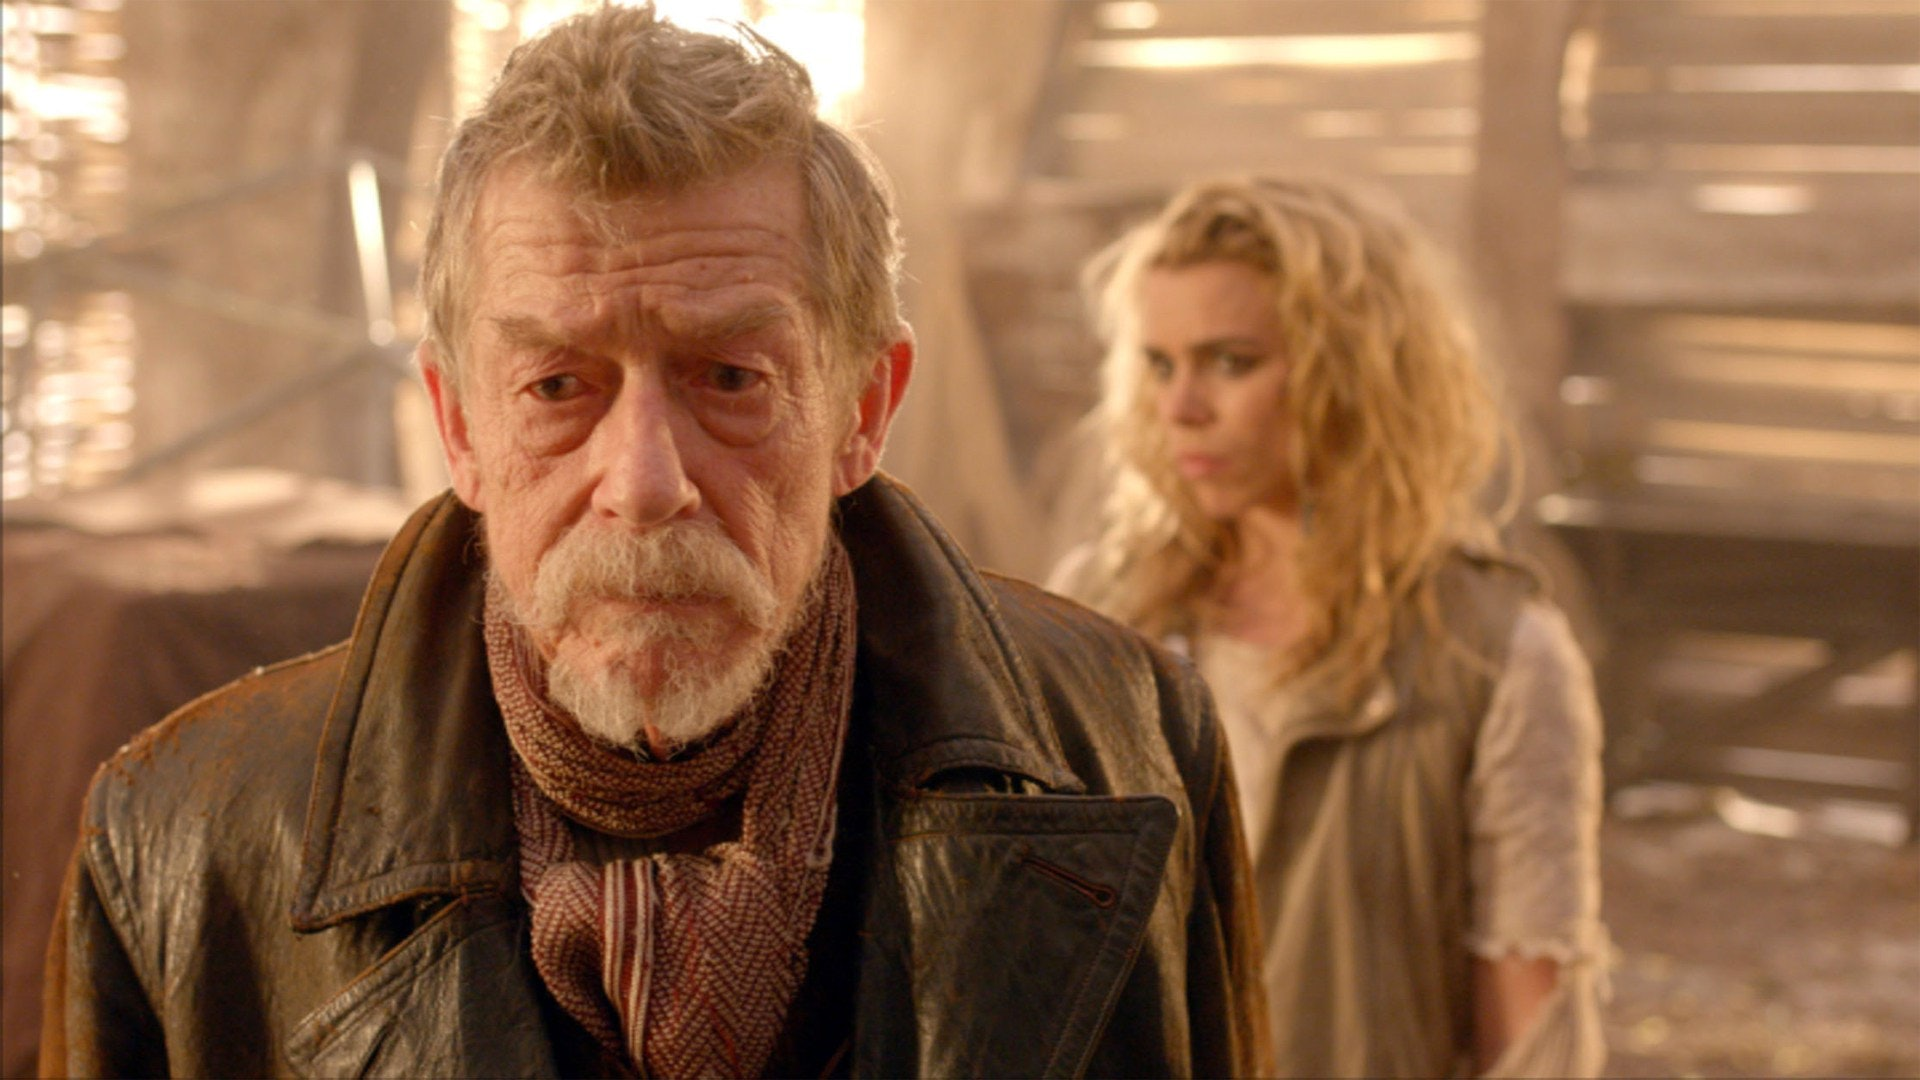 The War Doctor (John Hurt) and a physical manifestation of a weapon called The Moment, taking the form of Rose Tyler (Billie Piper).